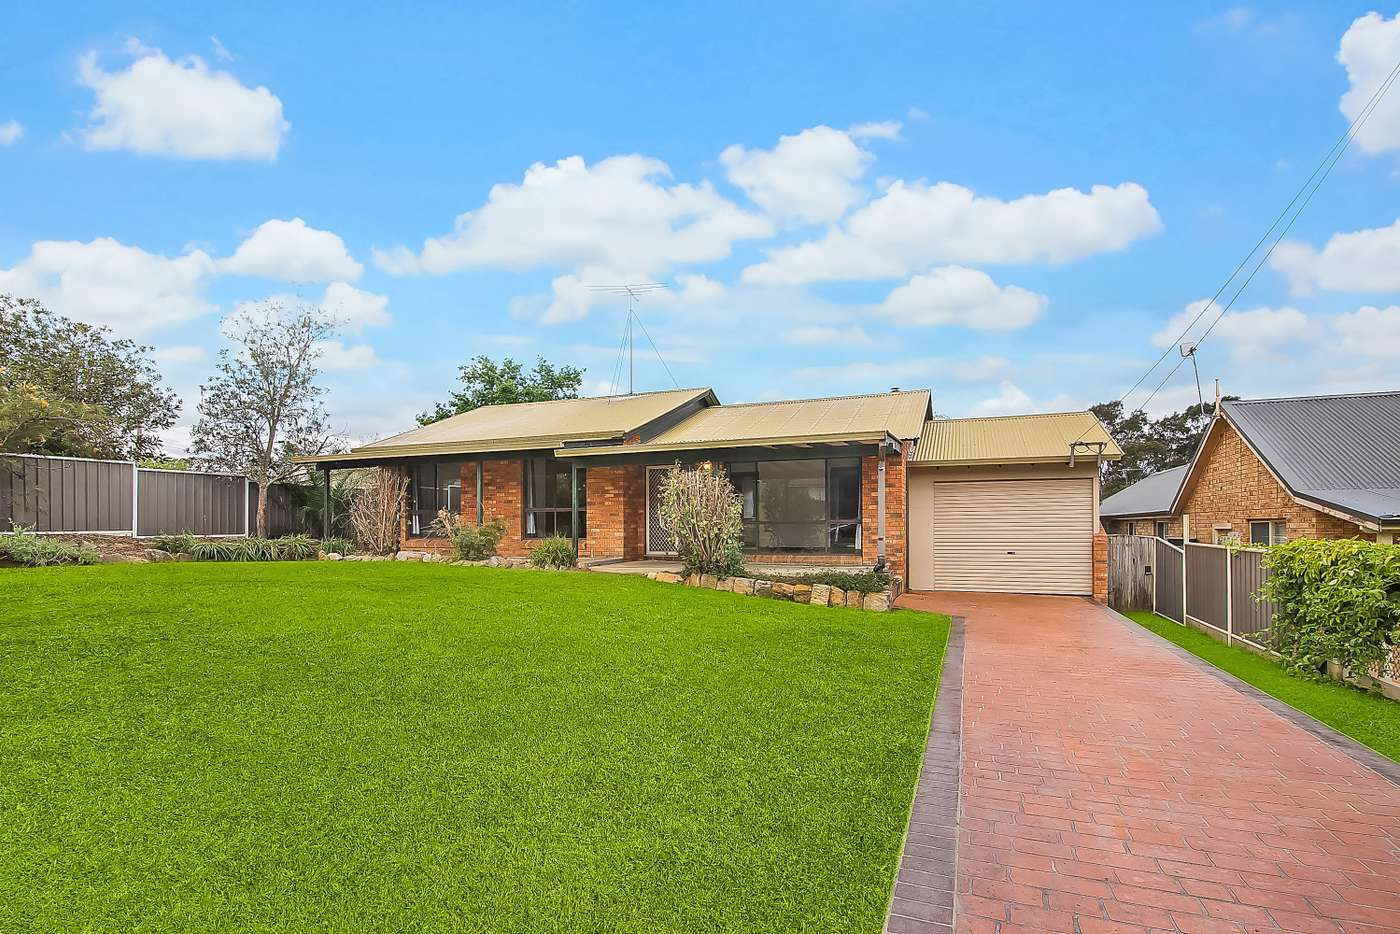 Main view of Homely house listing, 12 Clergy Road, Wilberforce NSW 2756